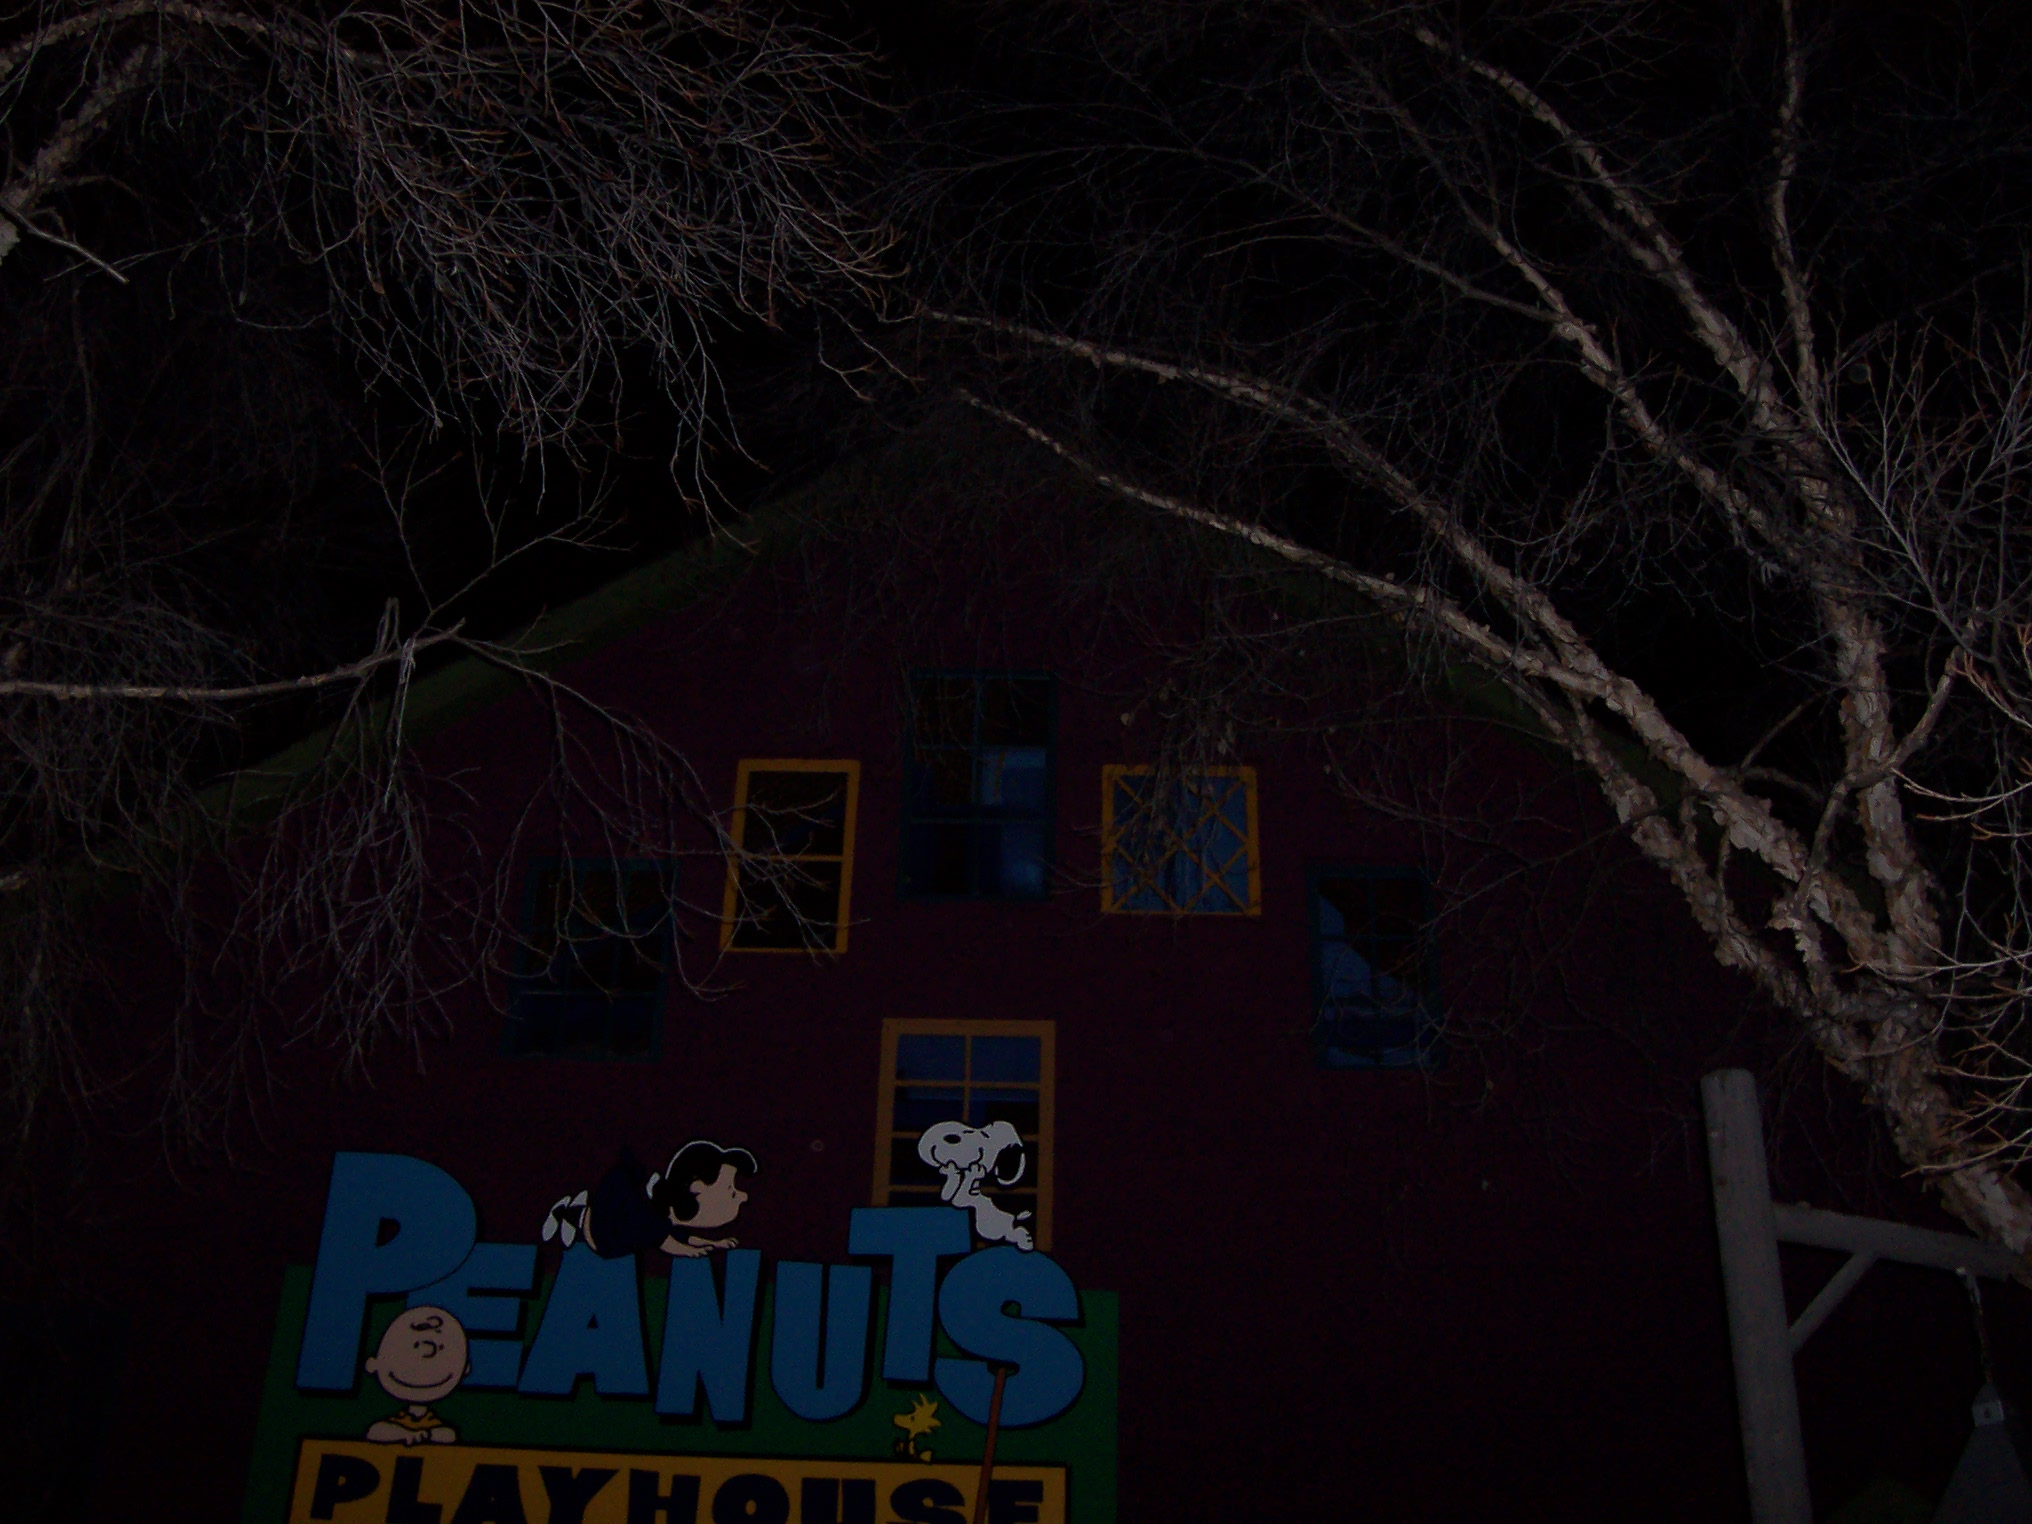 Outside of Peanut's Playhouse